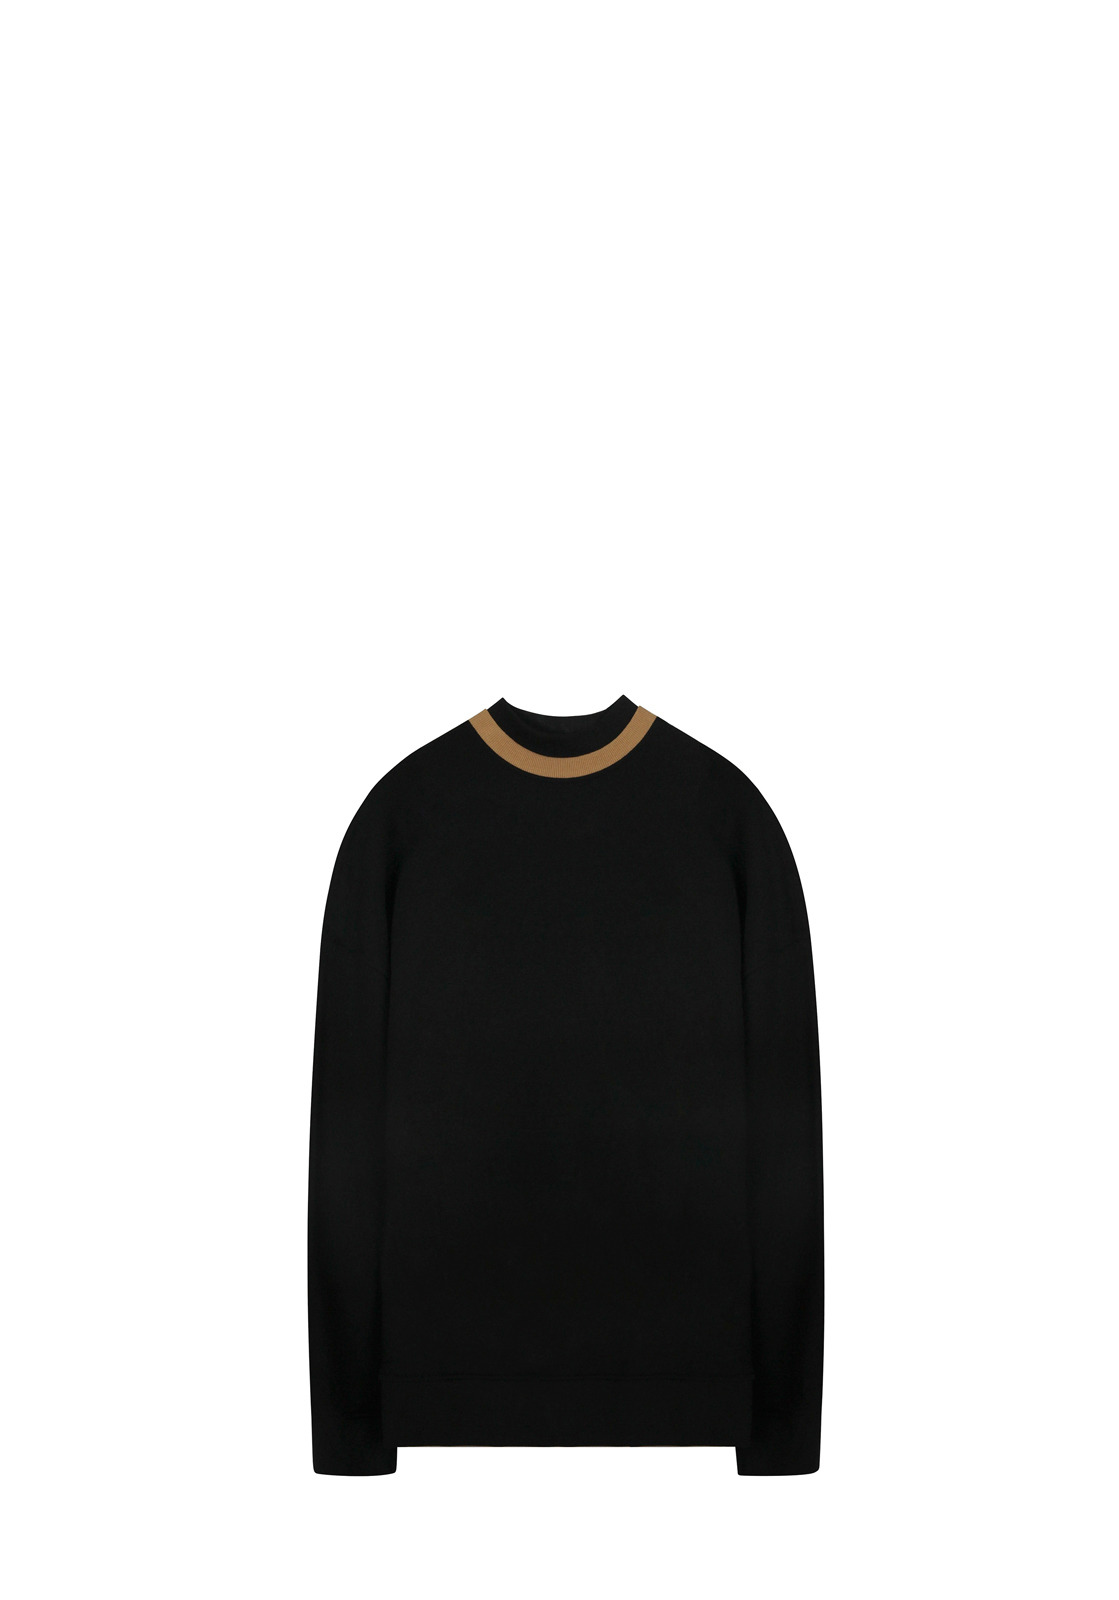 V311 DOUBLE NECK SWEATSHIRTBLACK